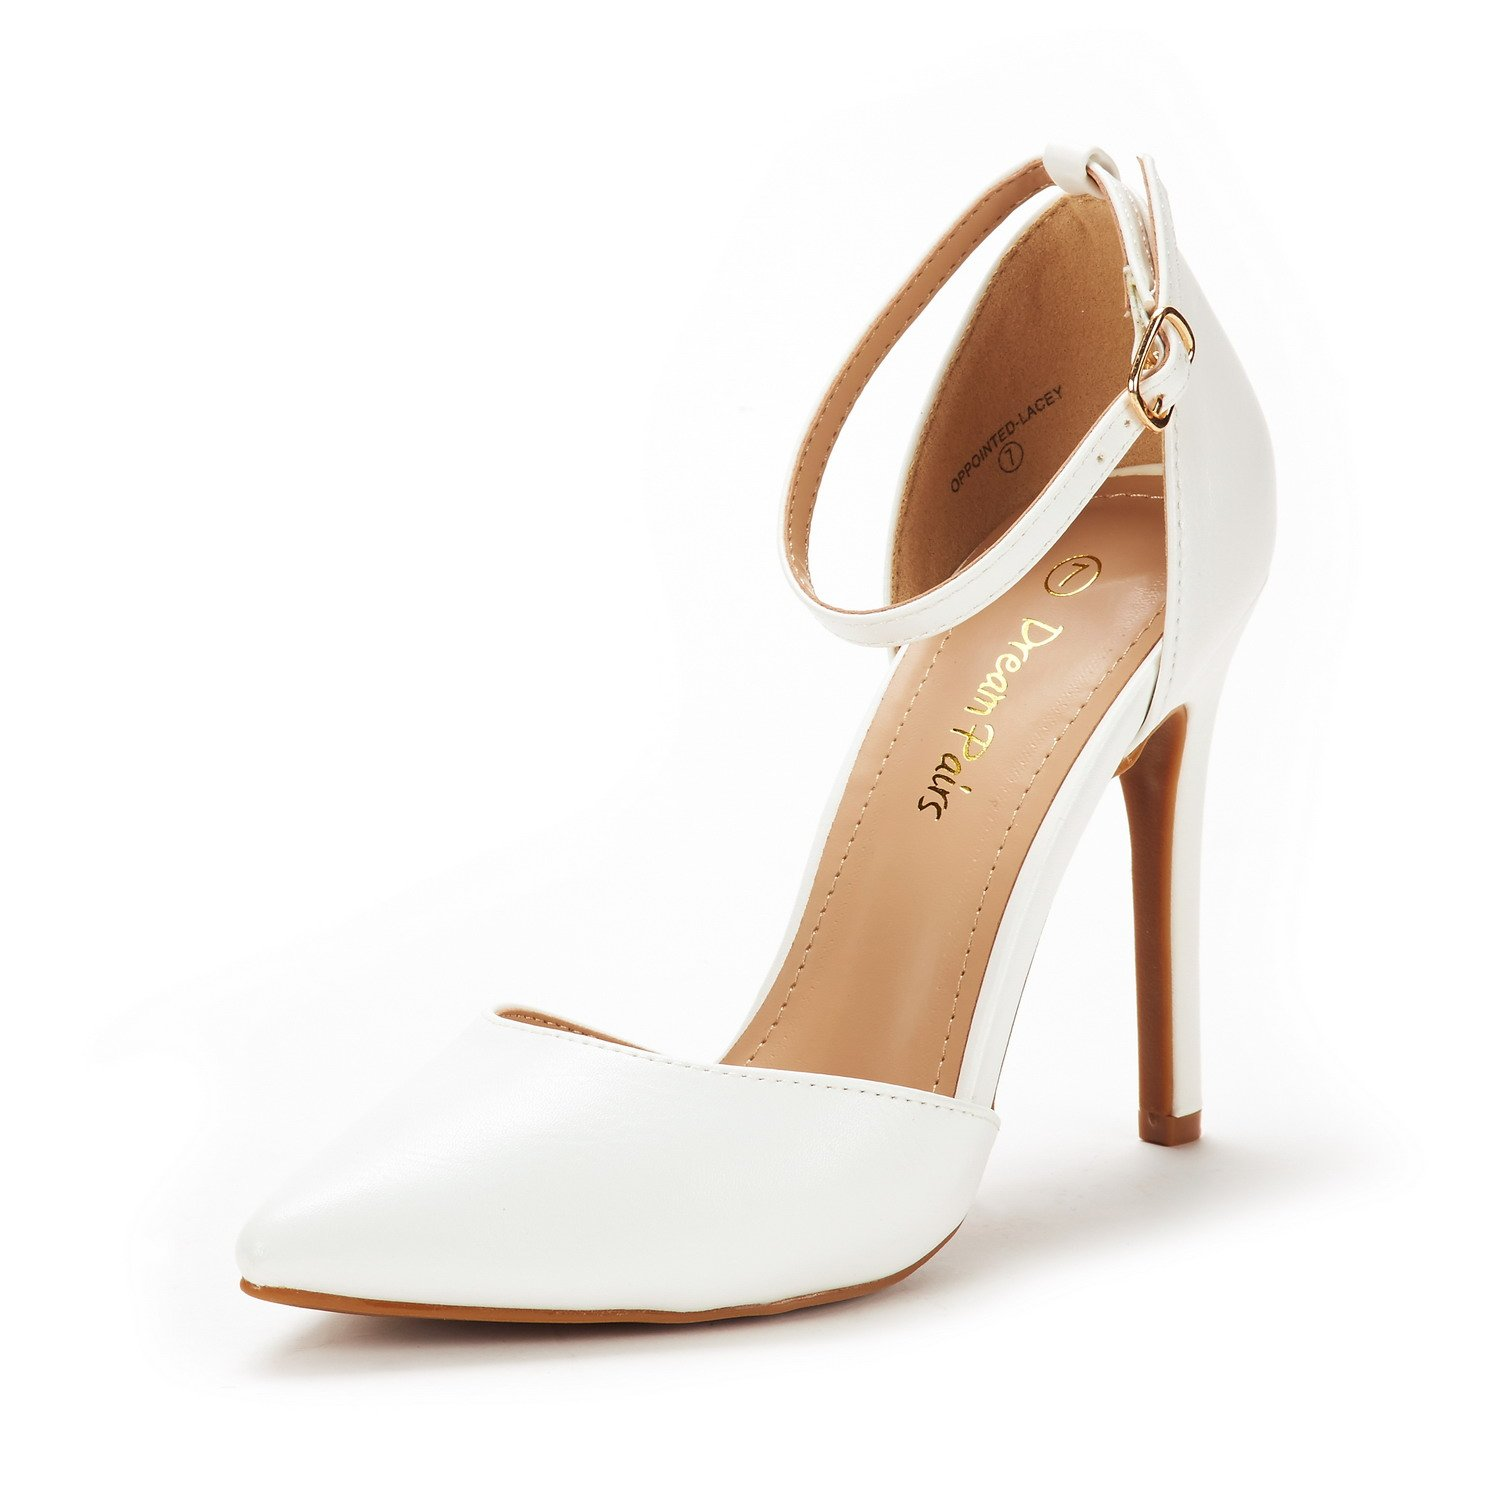 DREAM PAIRS Women's Oppointed-Lacey White Pu Fashion Dress High Heel Pointed Toe Wedding Pumps Shoes Size 7 M US